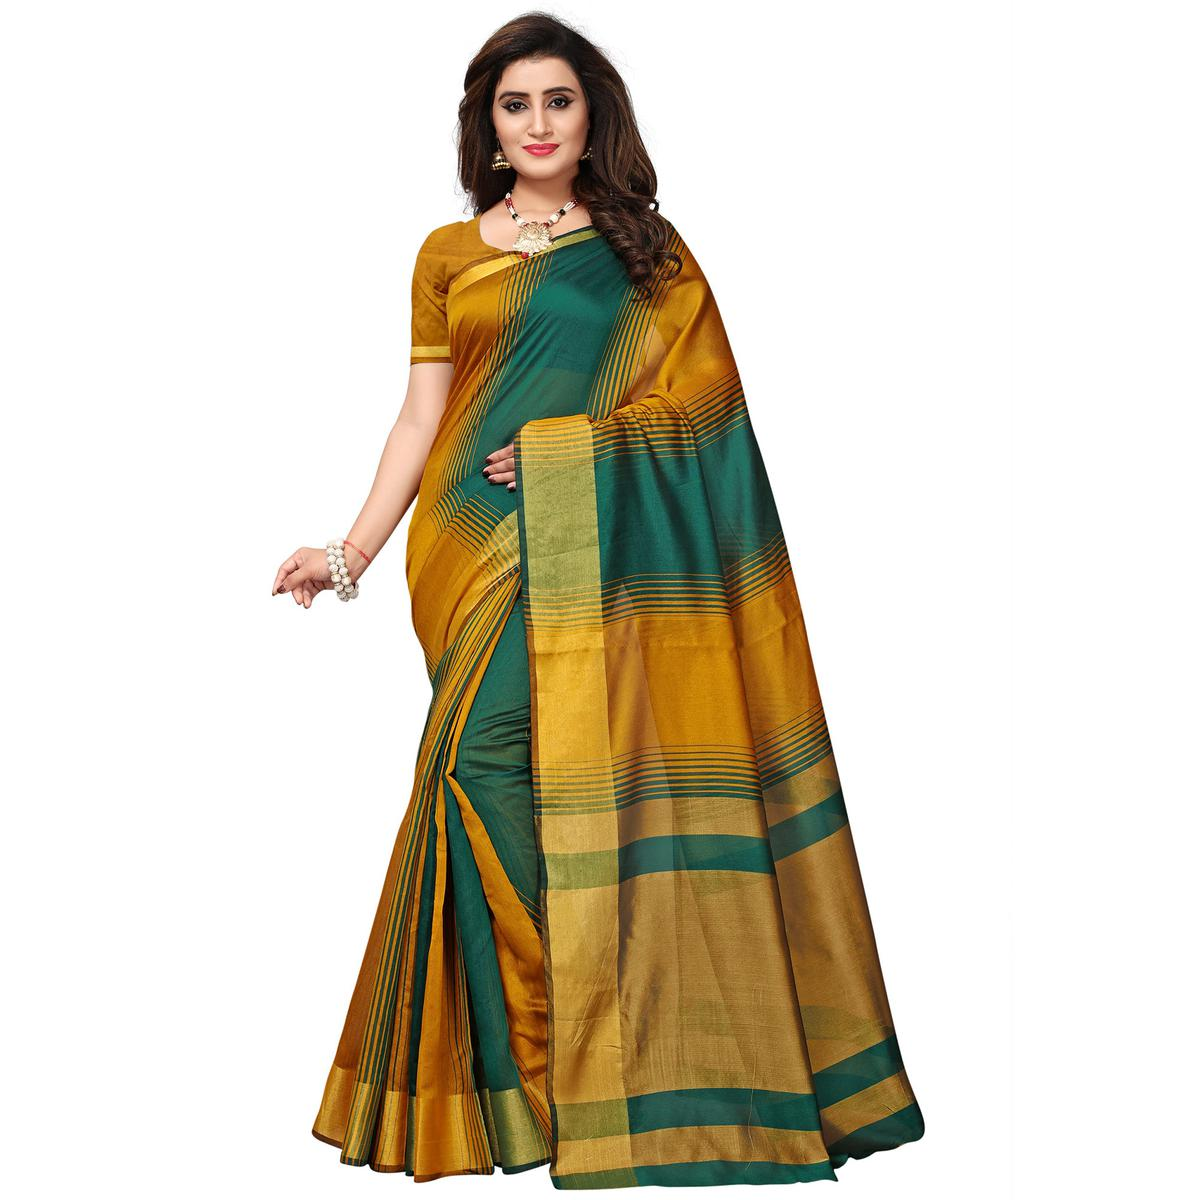 cb4a795a41 Buy Impressive Yellow-Green Colored Casual Printed Cotton Silk Saree for  womens online India, Best Prices, Reviews - Peachmode